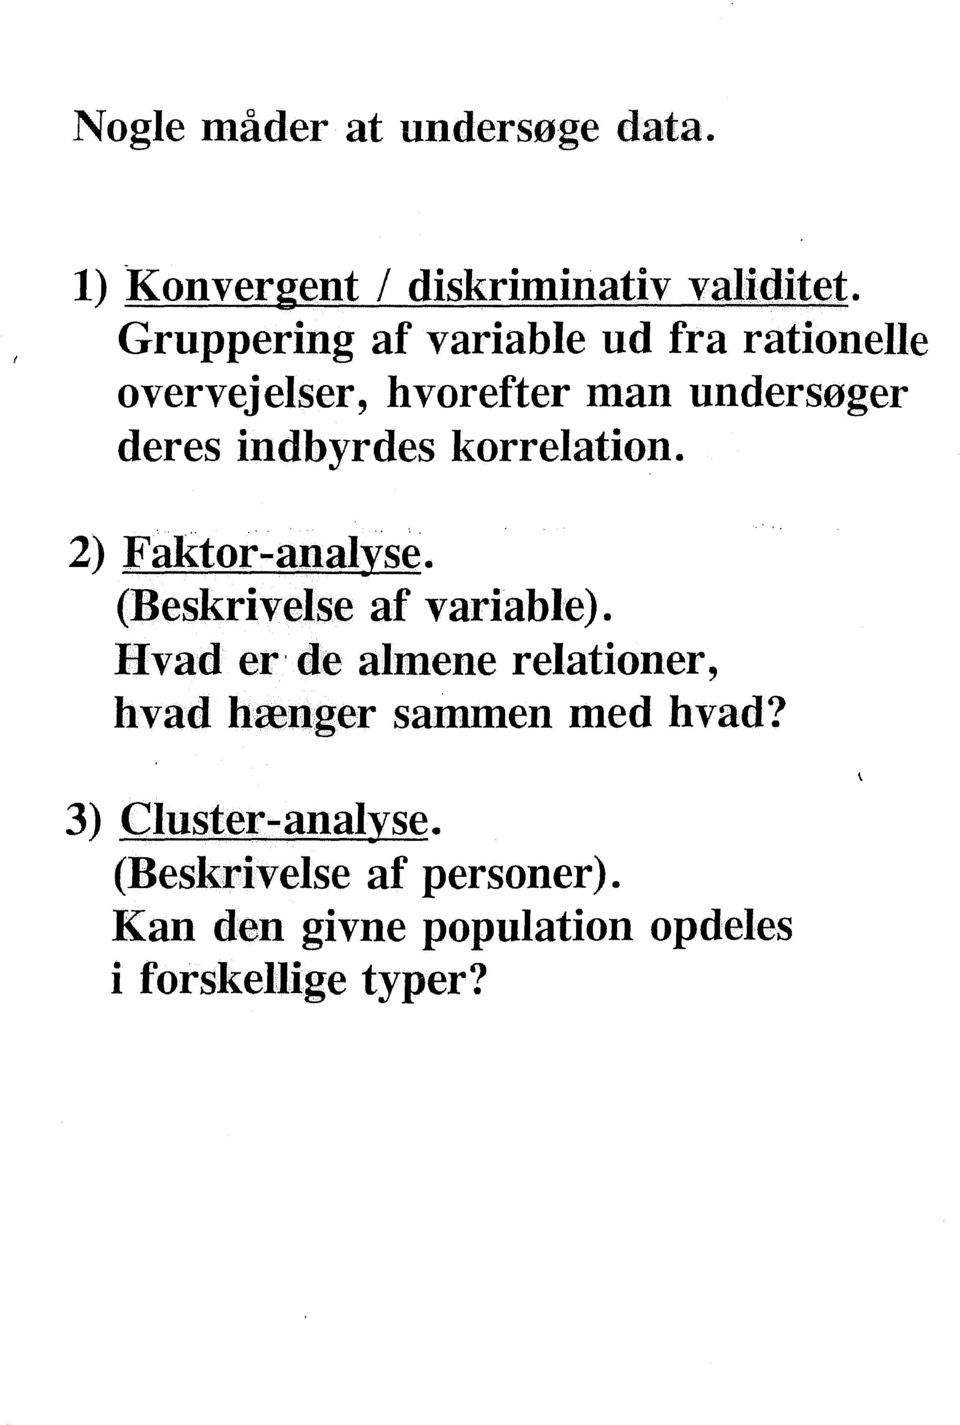 korrelation. 2) Faktor-analy~. (Beskrivelse af variable).